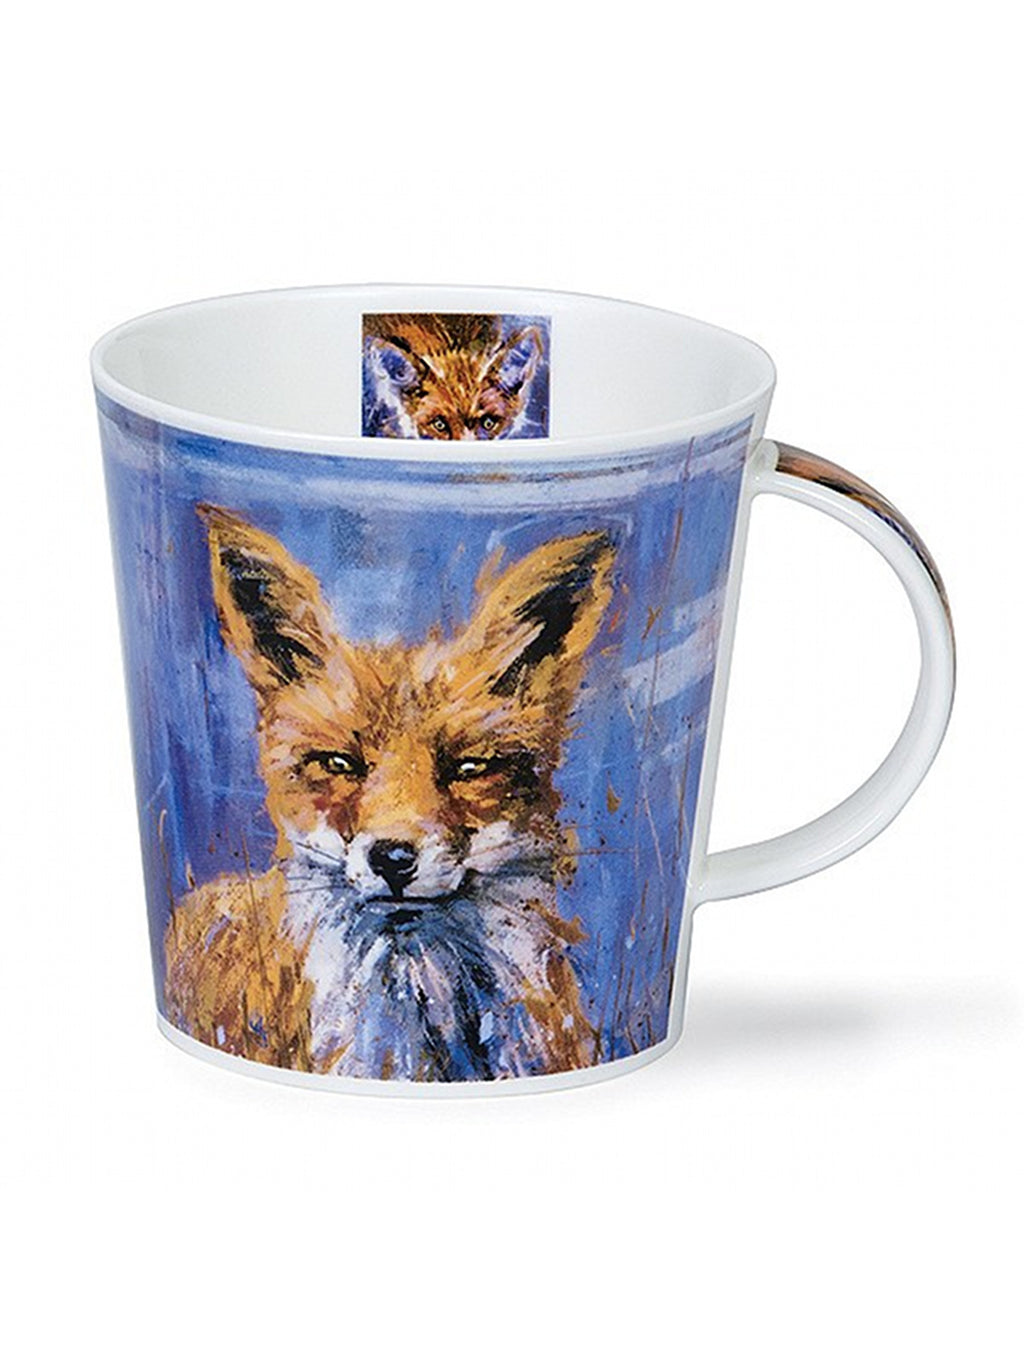 Buy Dunoon Mugs in Canada Cairngorm Animal in Art Fox Fine Bone China Made in England Tea Coffee Red Scarf Equestrian